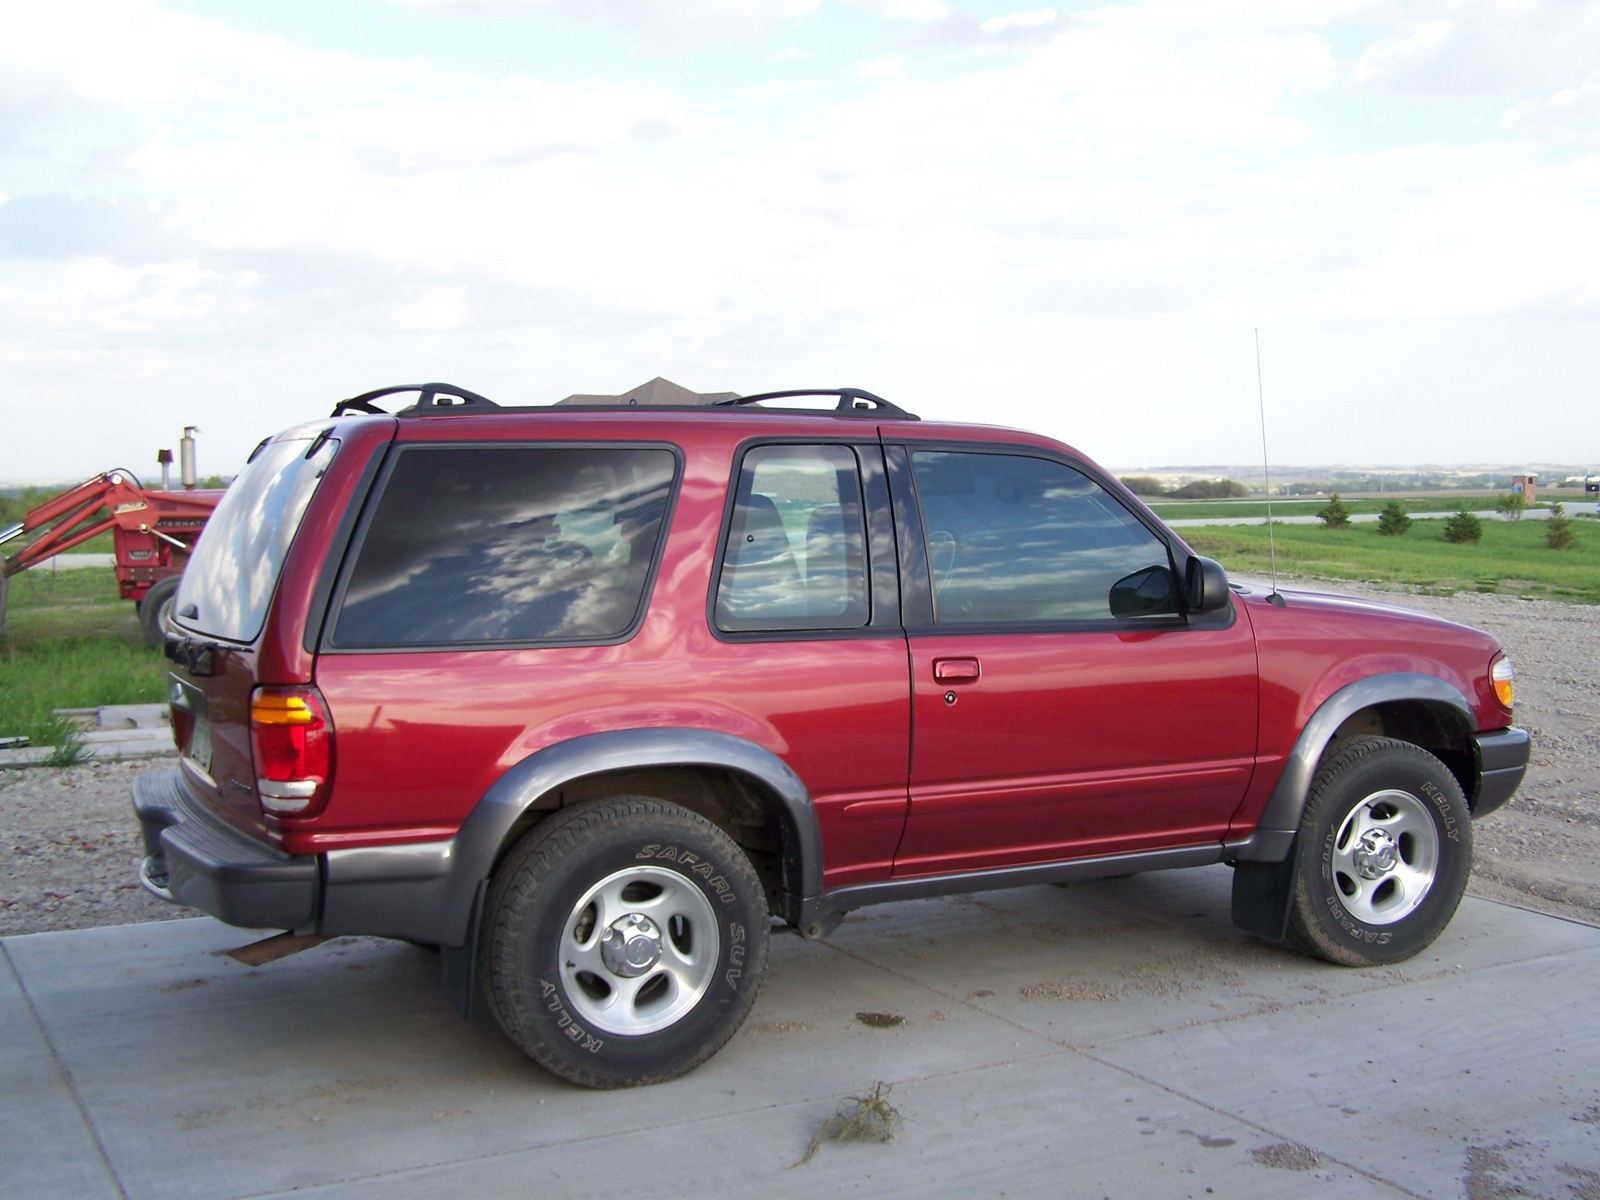 Picture of 2000 ford explorer 2 dr sport exterior